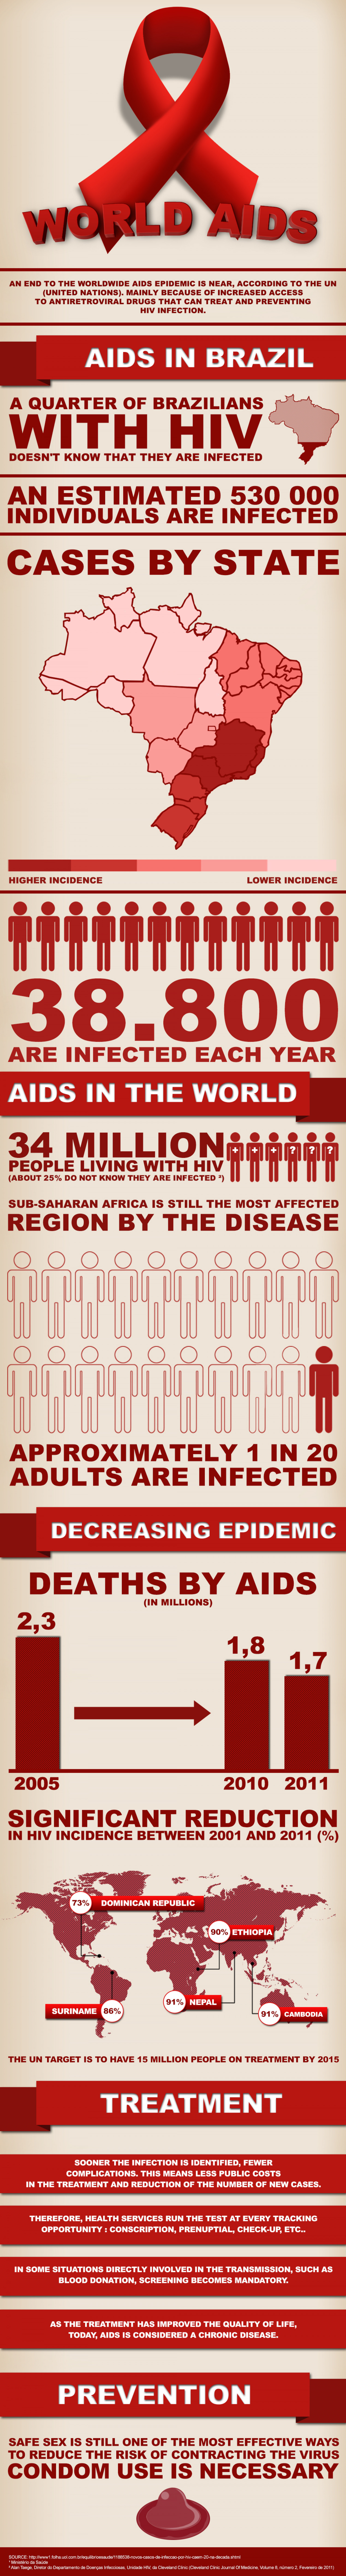 World AIDS Infographic